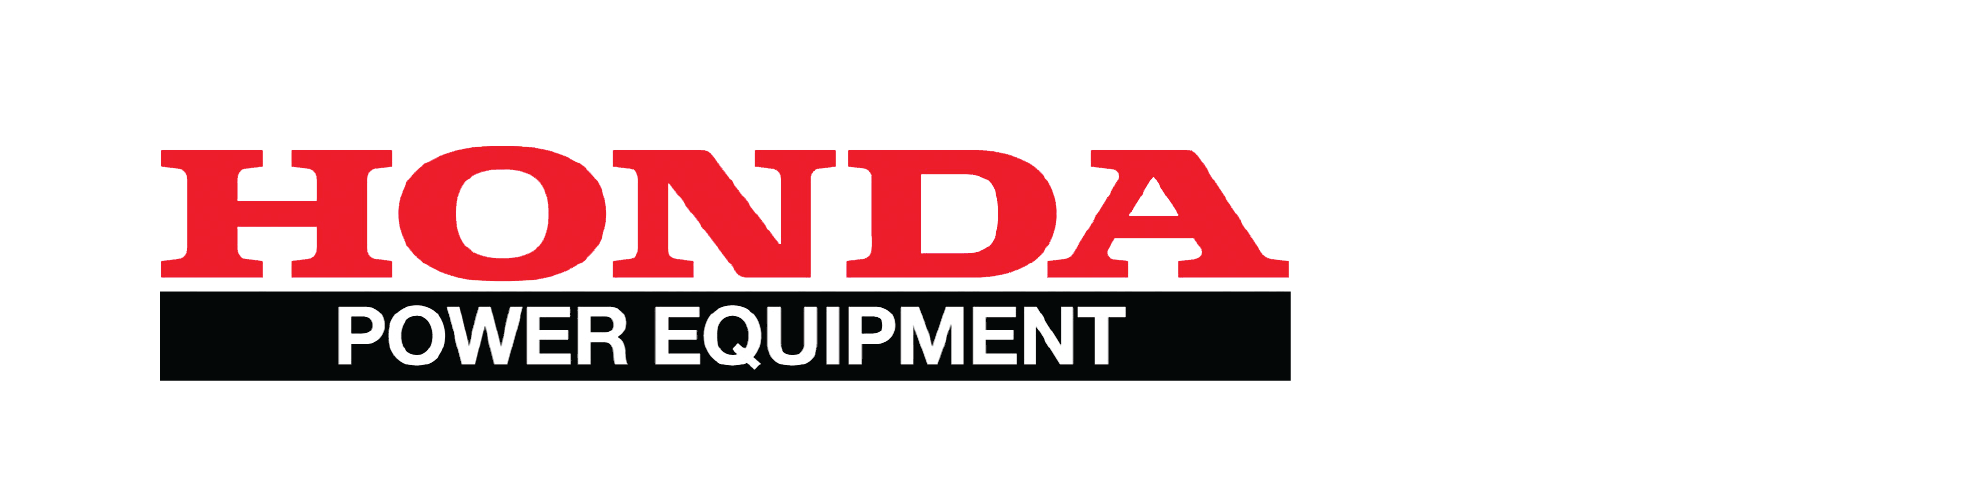 Palco is an authorized distributor of Honda Power Equipment